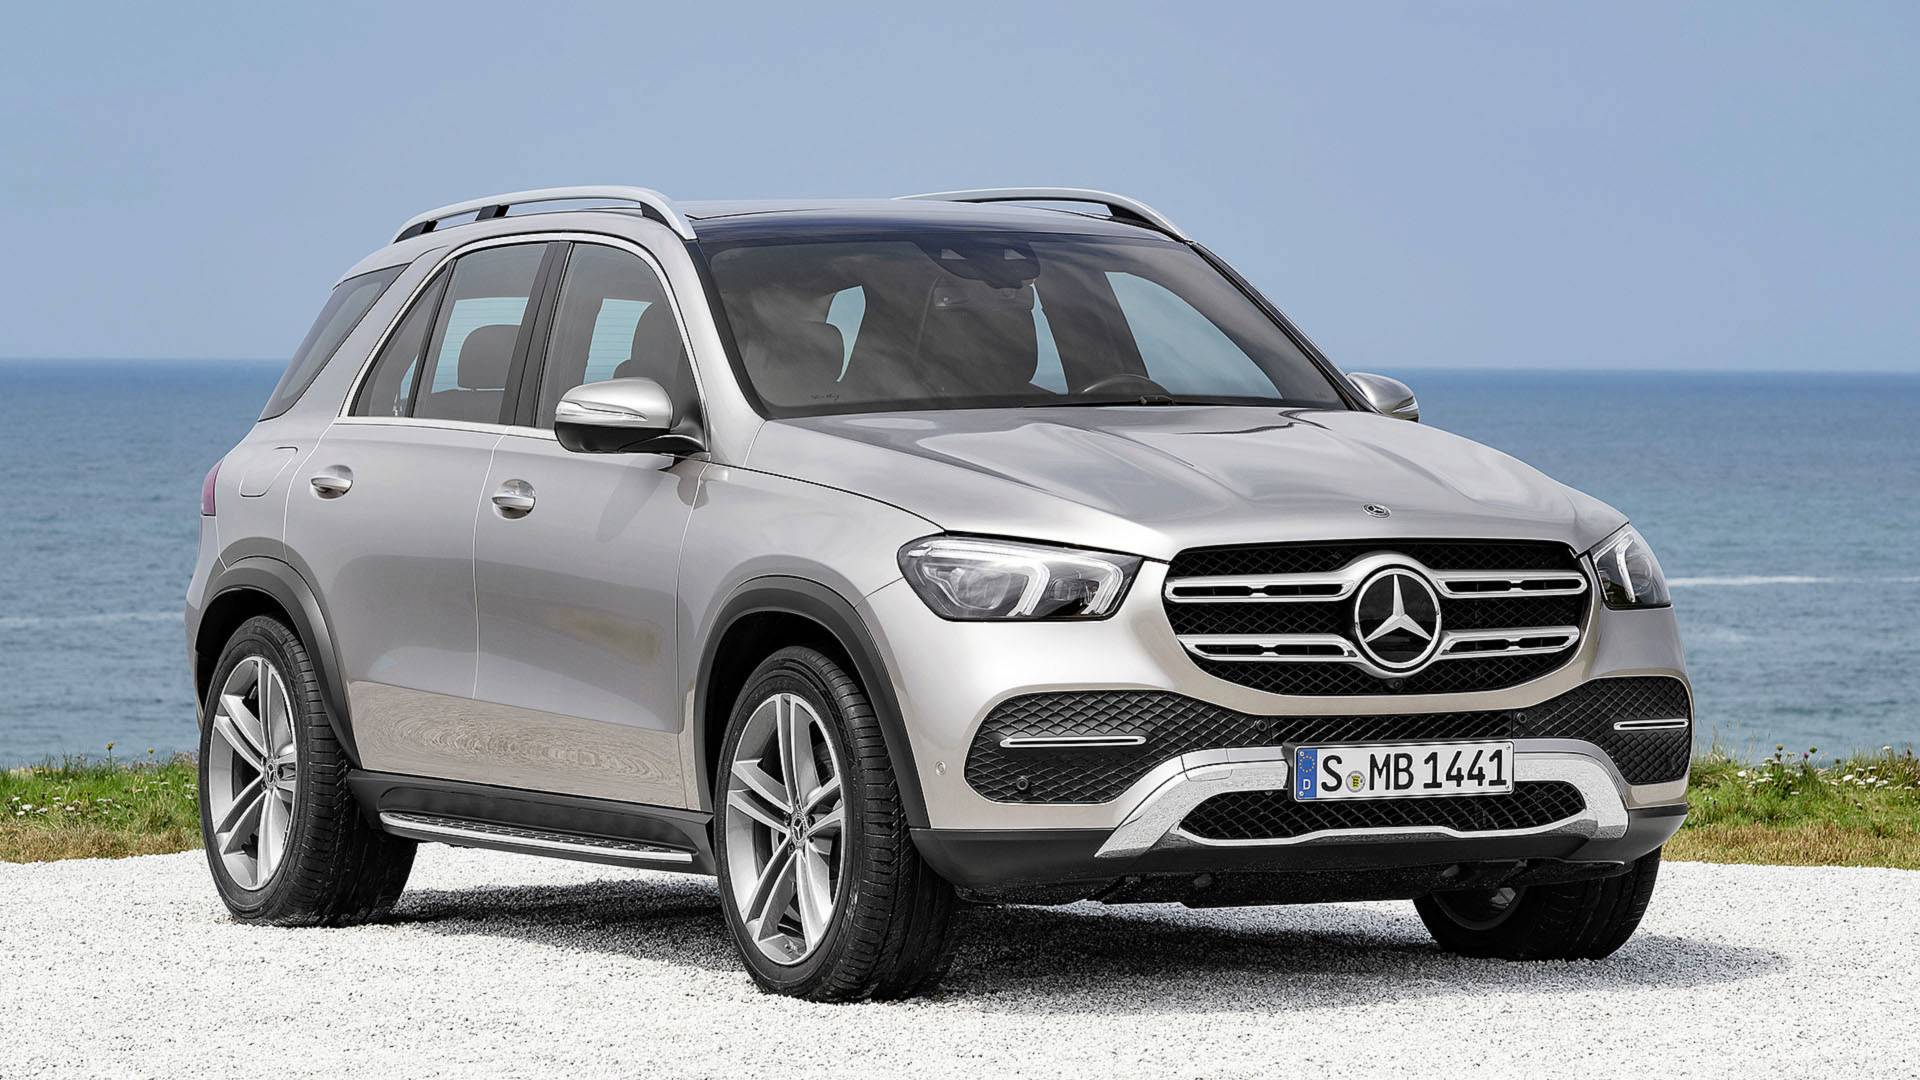 Super Mercedes-Benz Might Introduce GLE 580 SUV With Detuned AMG V8 LK-13